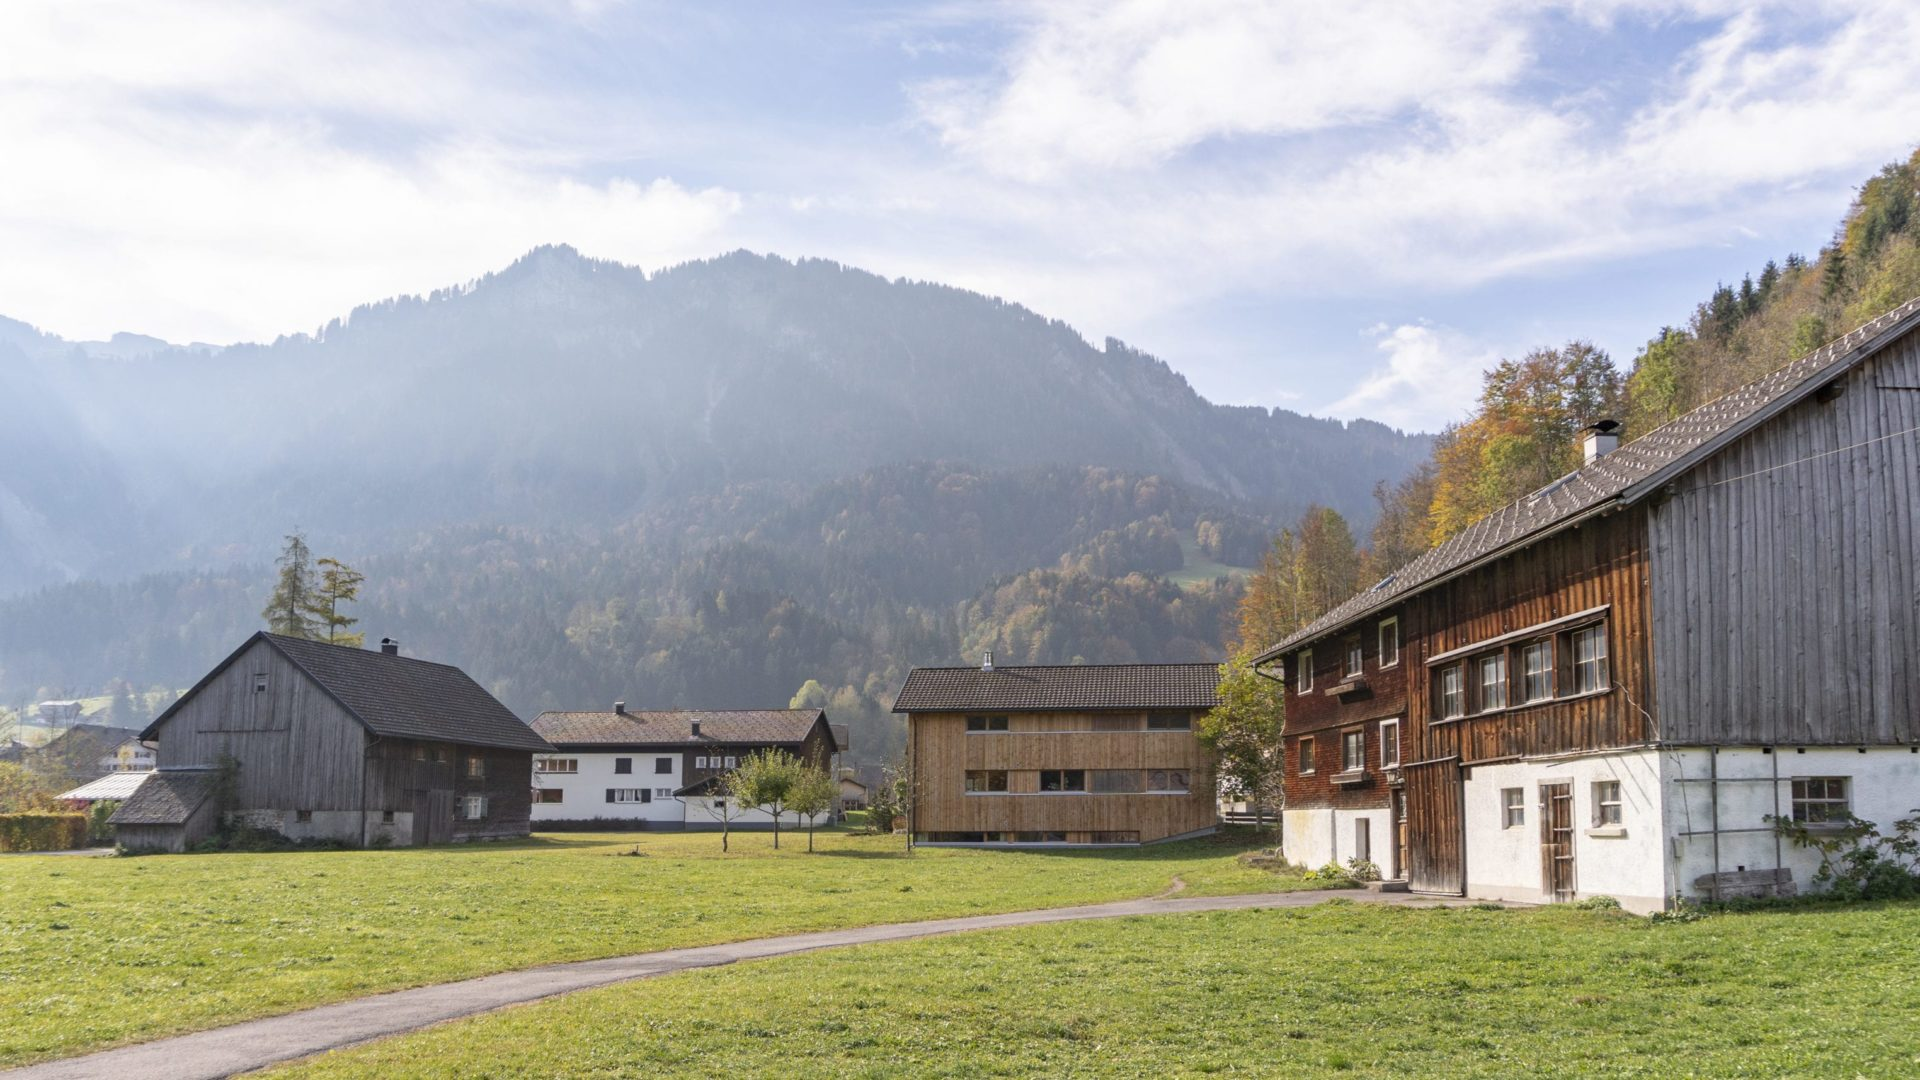 Zimmer Im Zentrum Feldkirch Architecture Building Culture For Travellers Holidays In